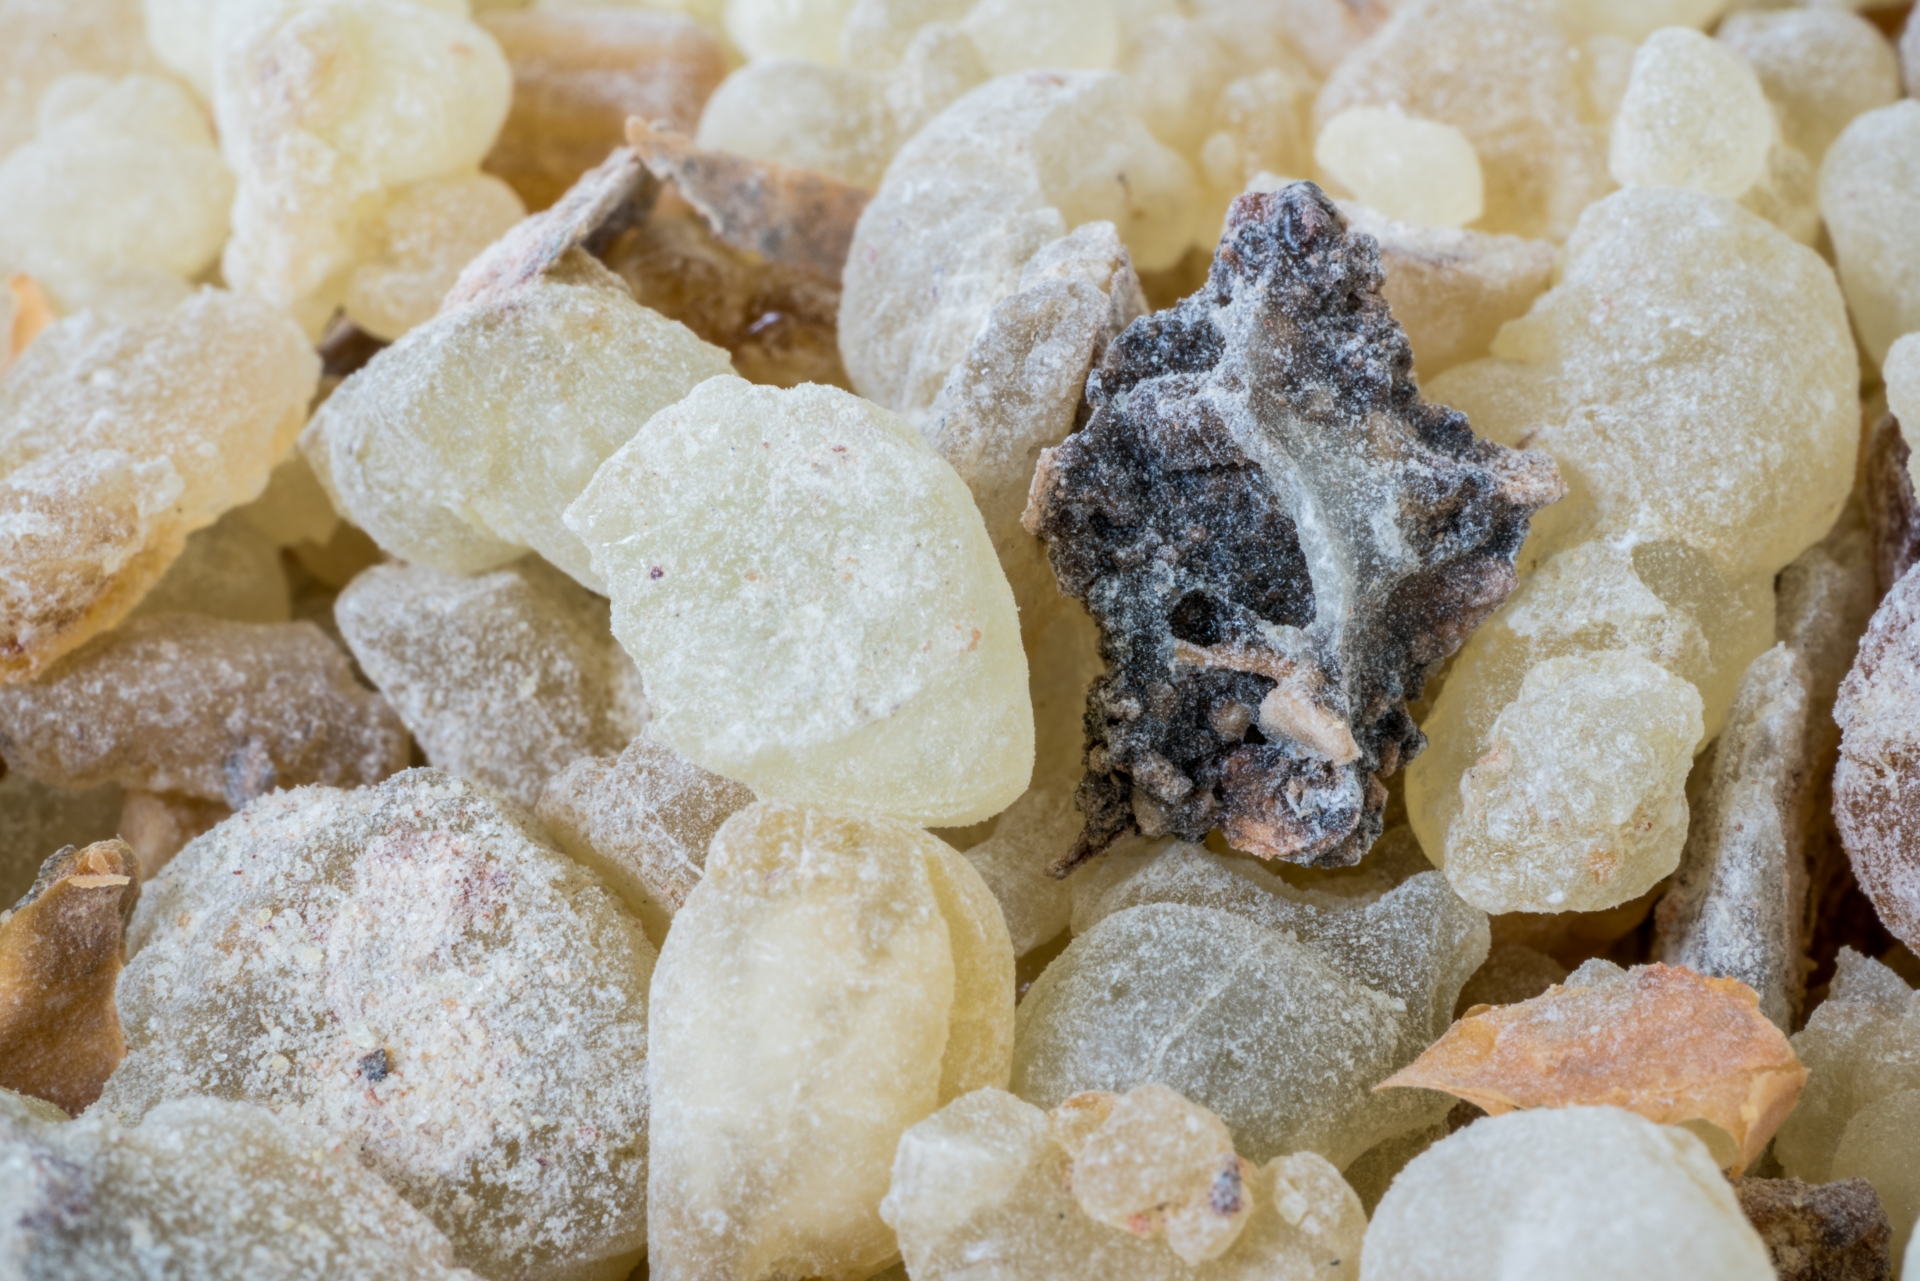 Frankincense Resin from the Young Living Farm in Oman